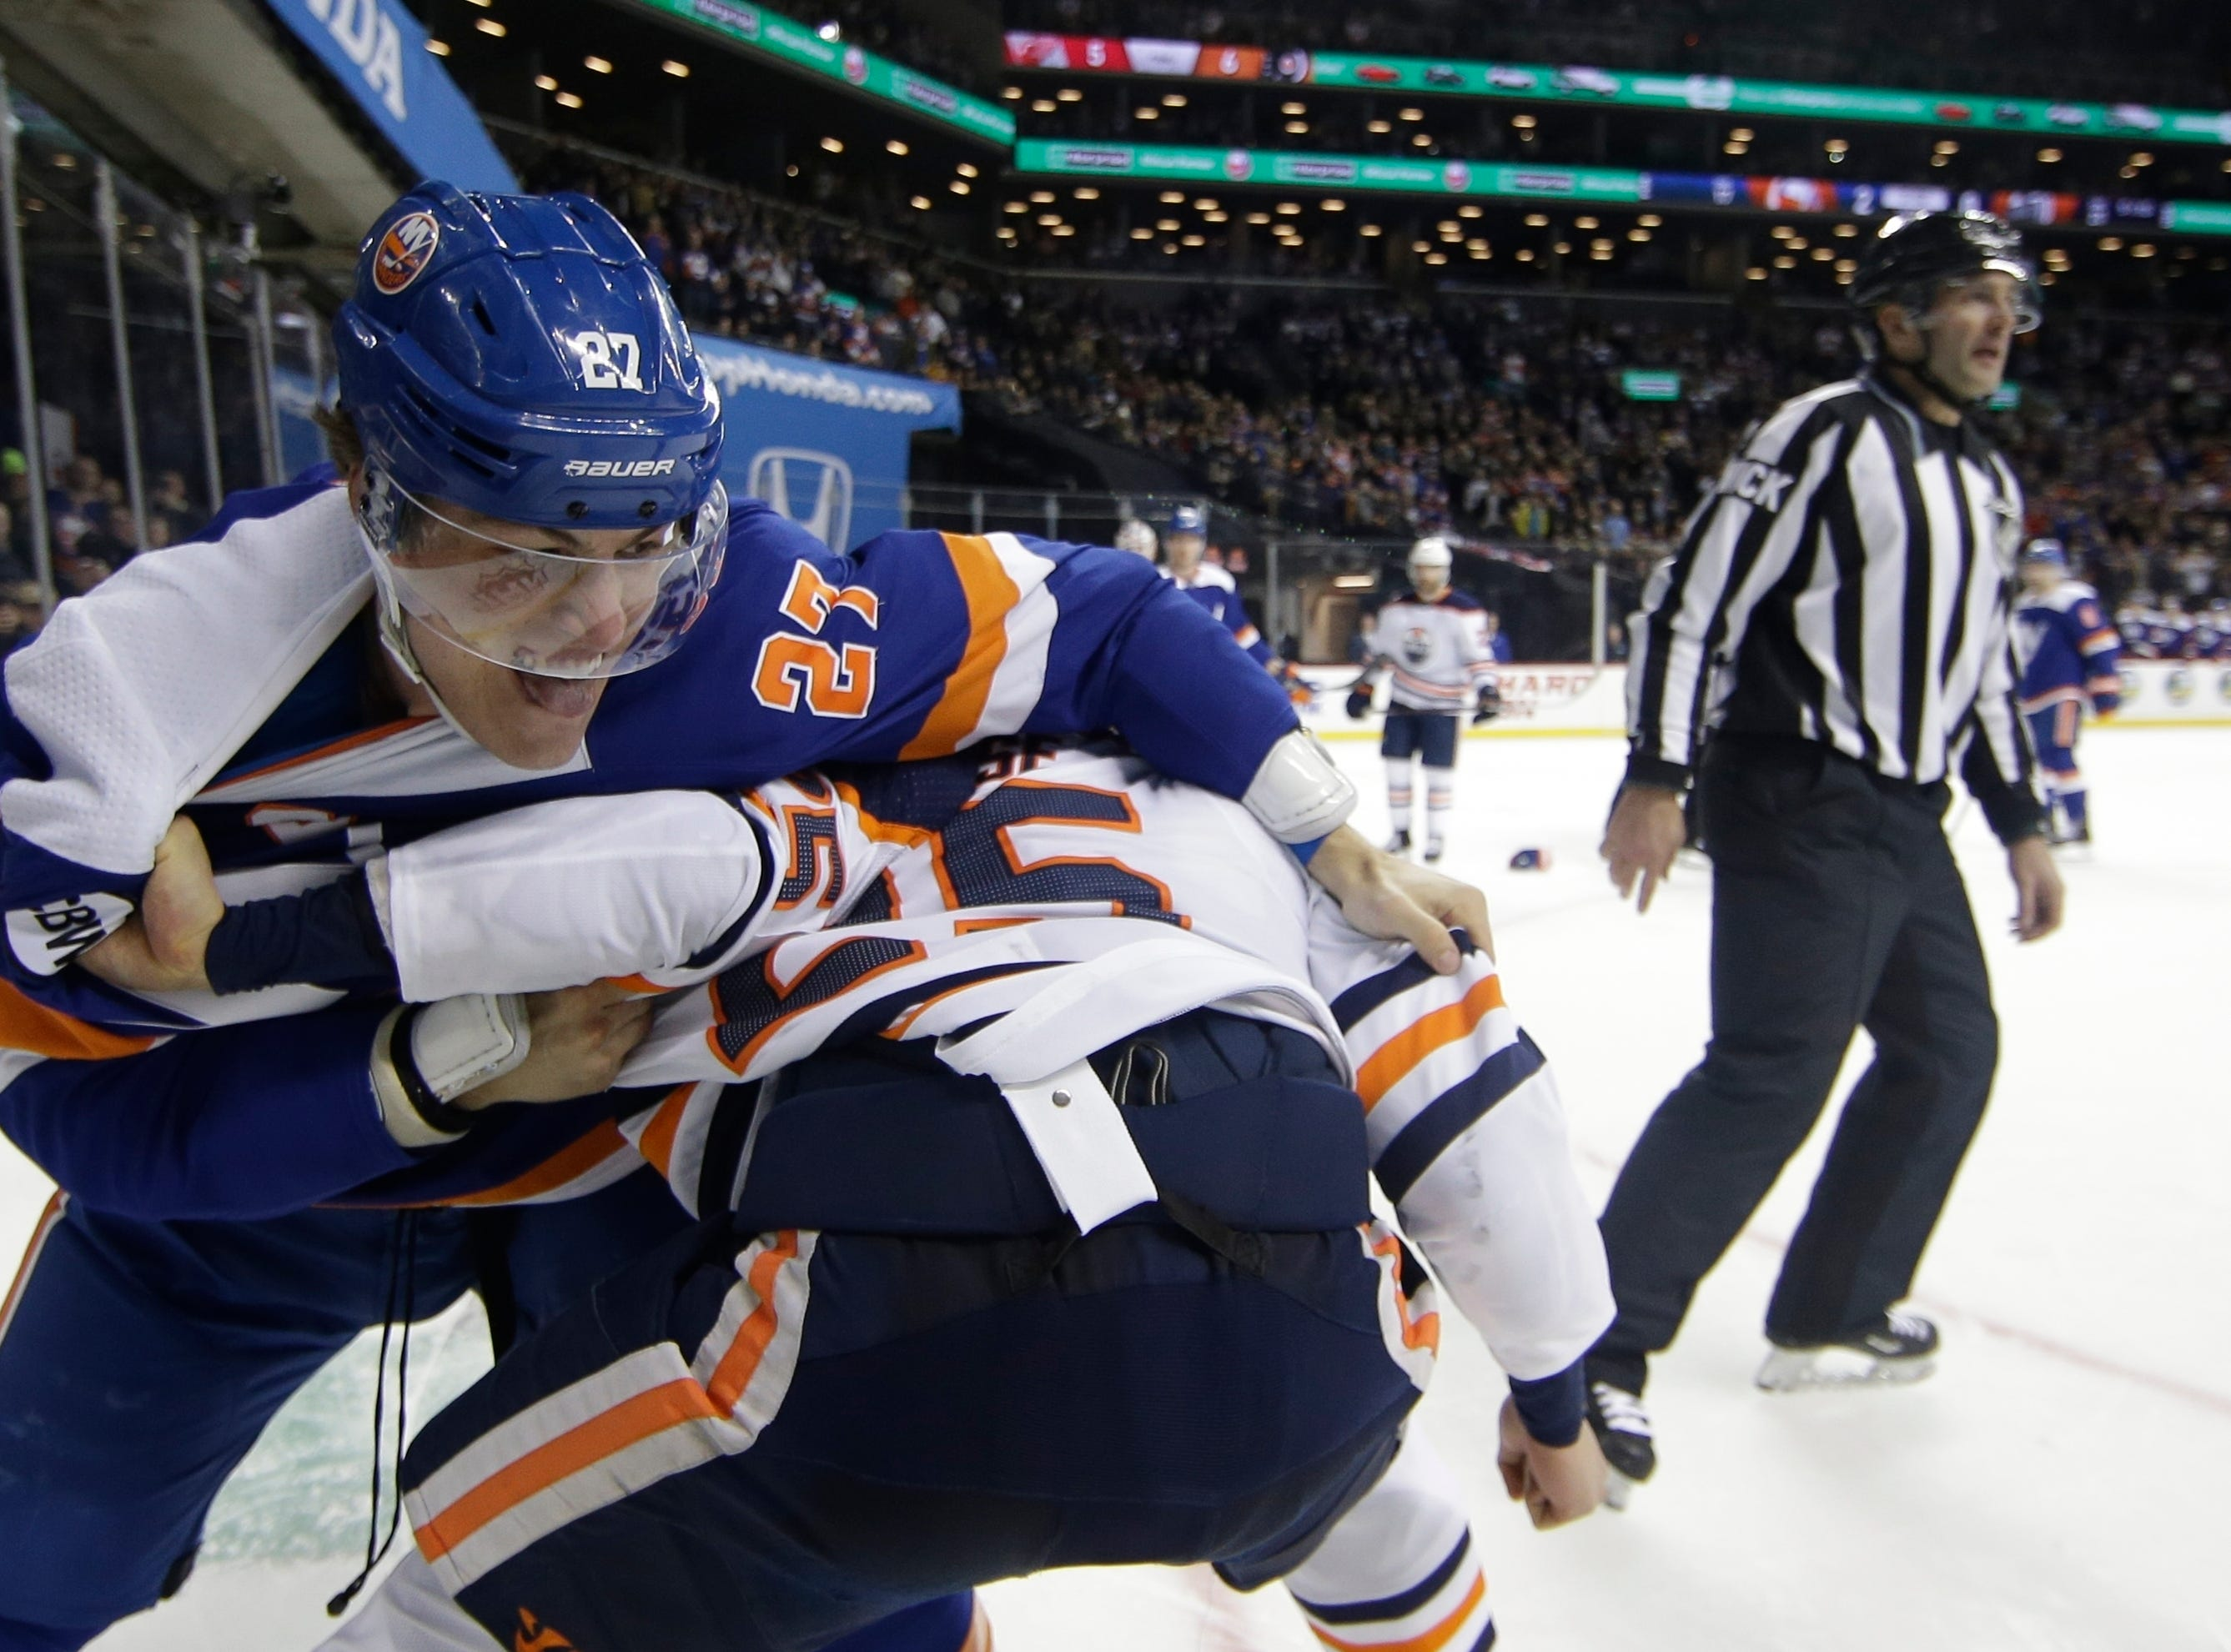 Feb. 16: New York Islanders' Anders Lee vs. Edmonton Oilers' Darnell Nurse.